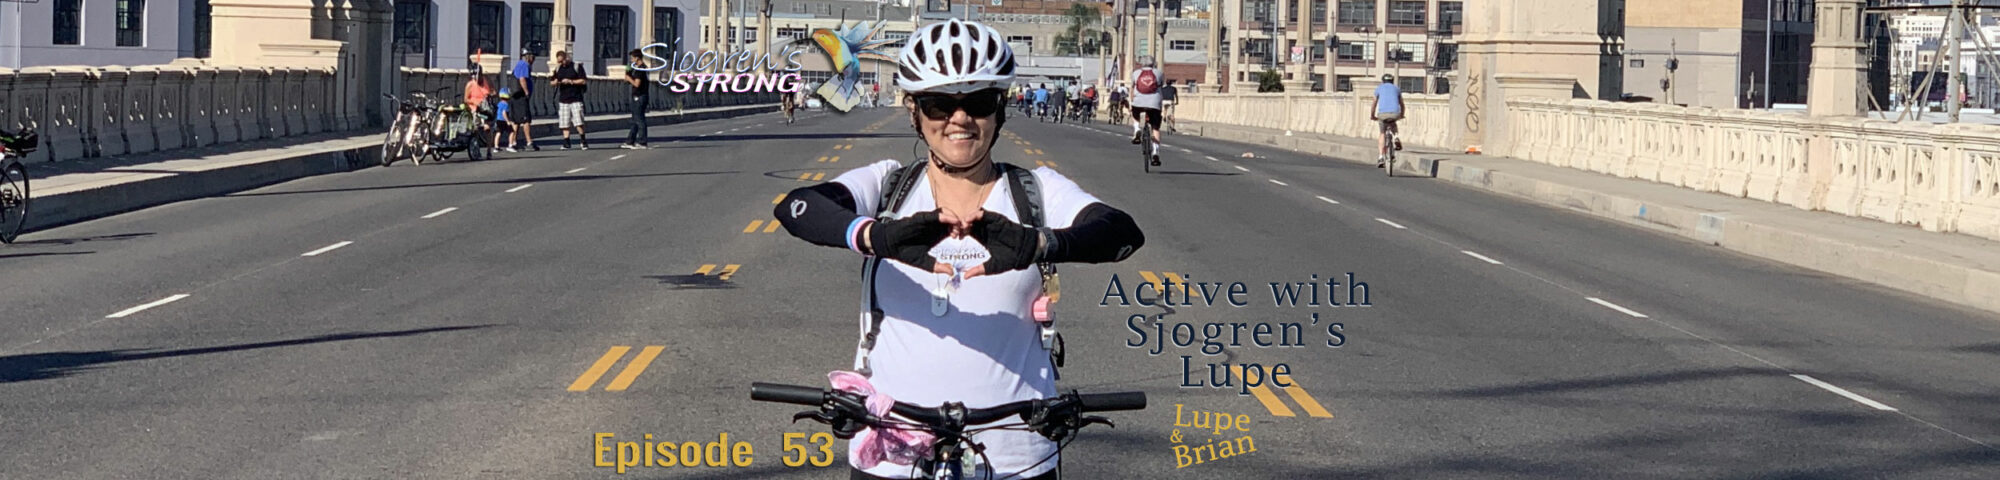 Active with Sjogren's, Lupe